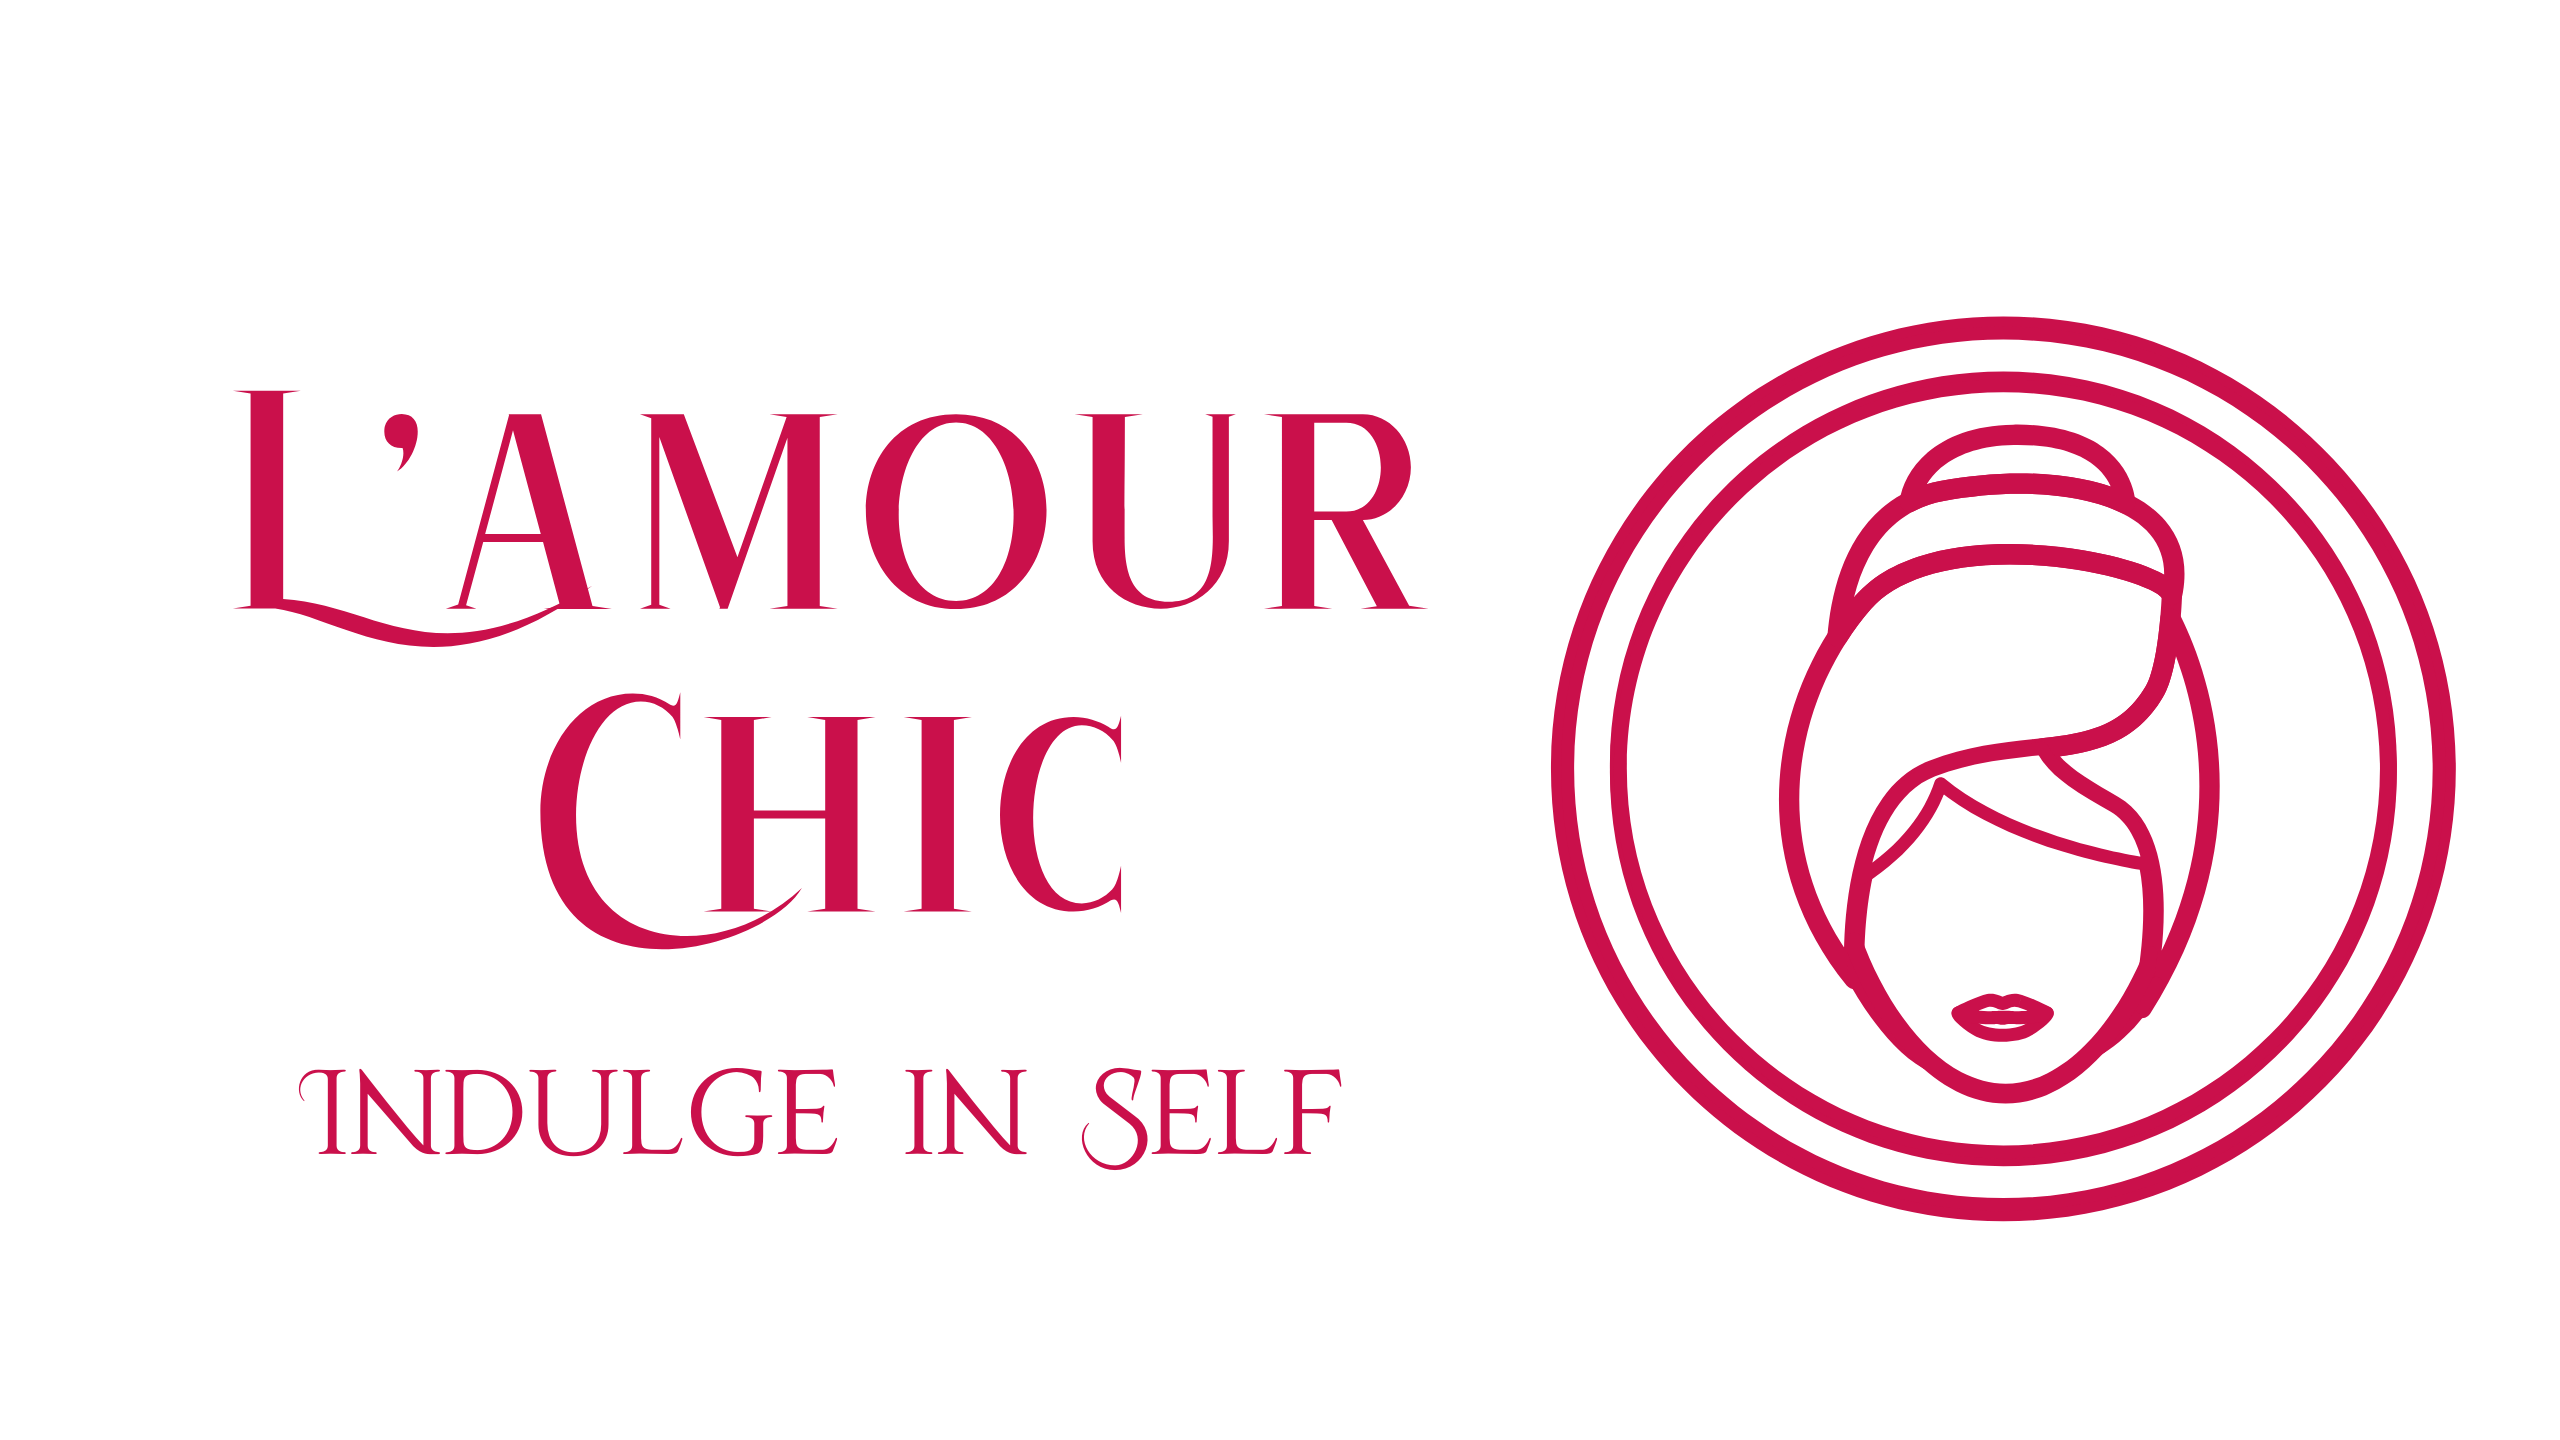 L'AMOUR CHIC